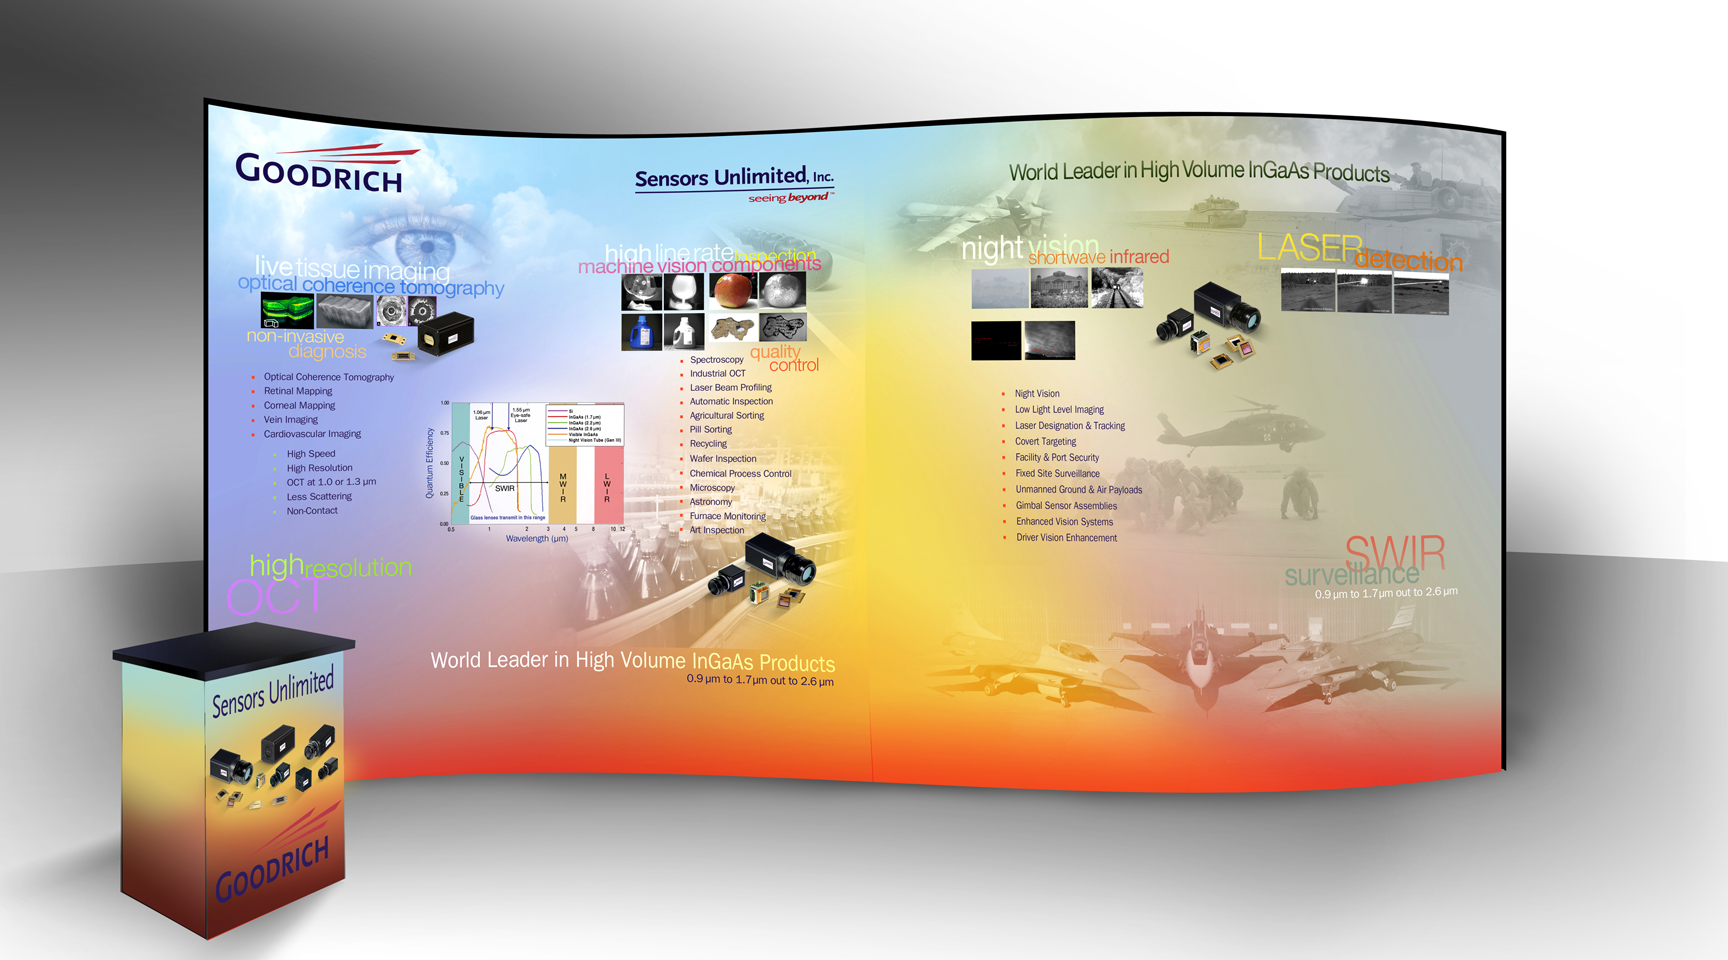 Sensors Unlimited-Goodrich Display Booth Showcases How SWIR Imaging is Used in Inspection, Surveillance, Live Tissue Imaging